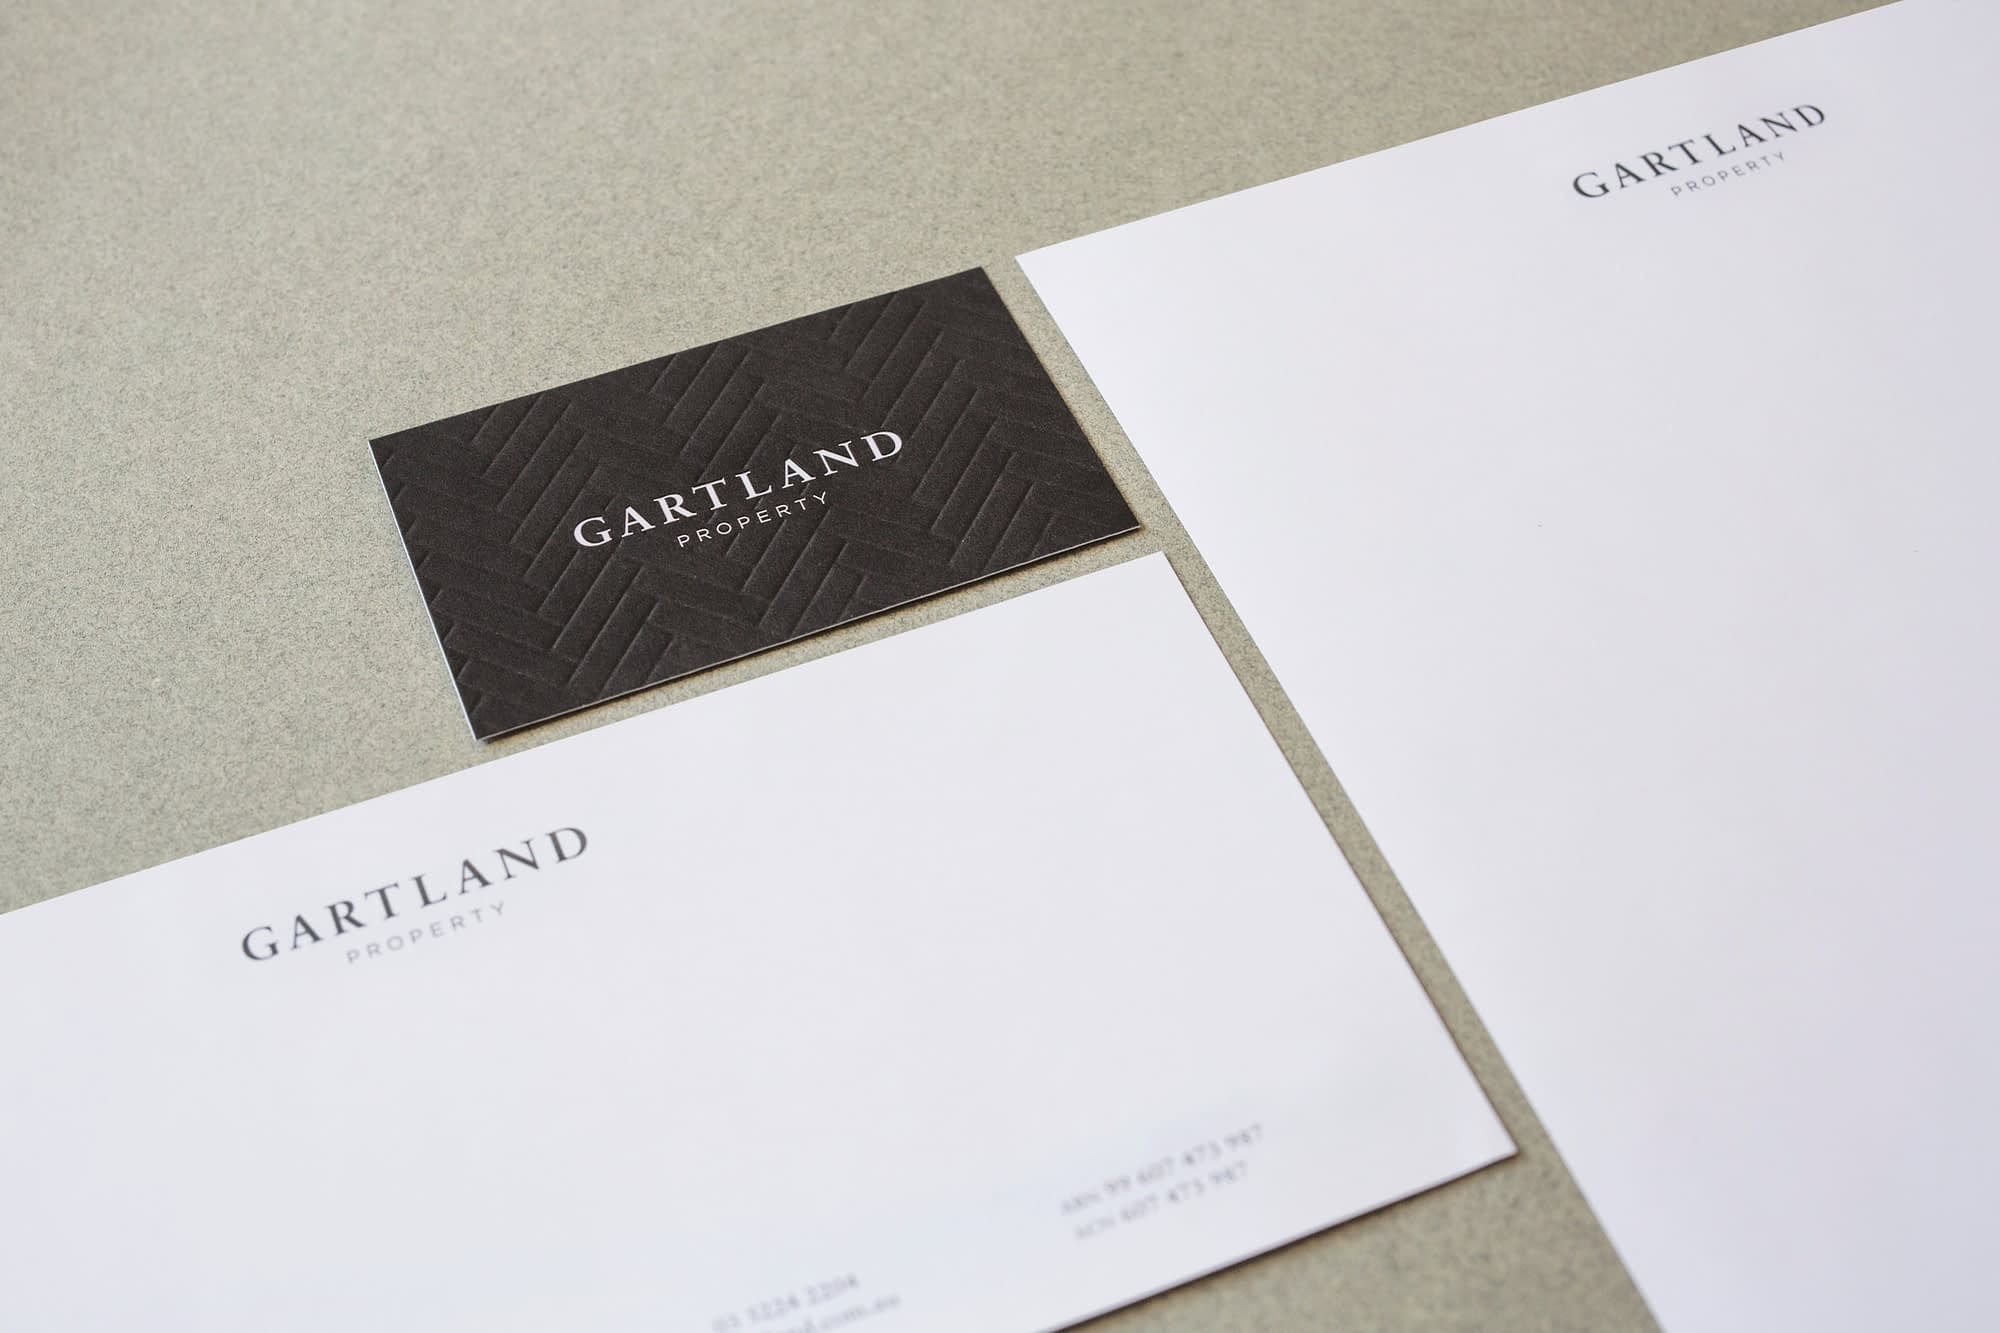 Gartland business card, letterhead, with compliments